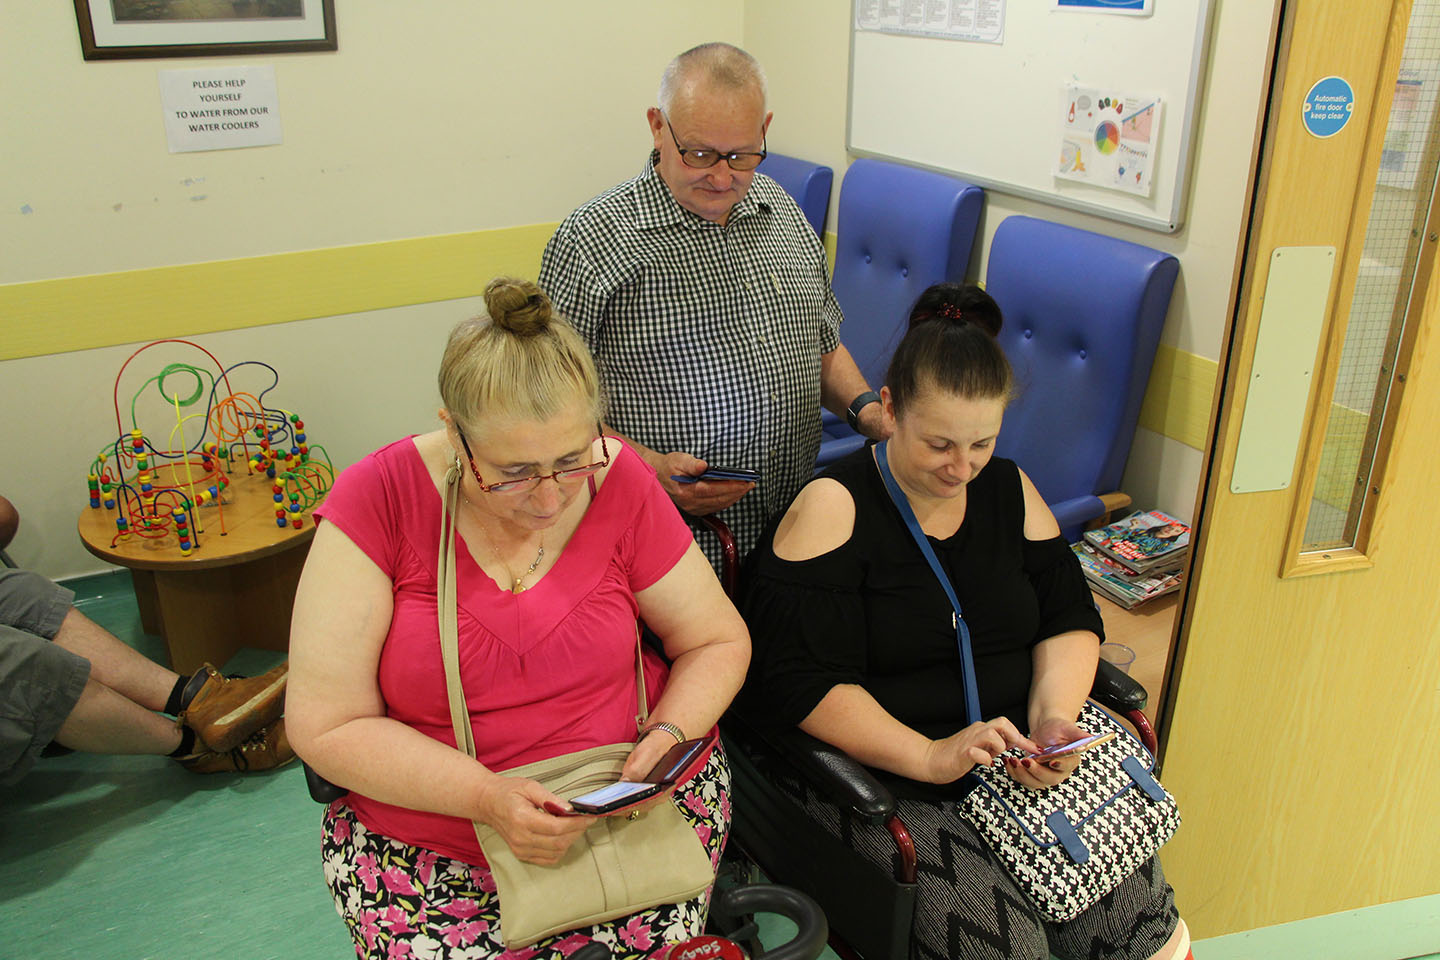 Free hospital WiFi for patients and visitors - North Tees